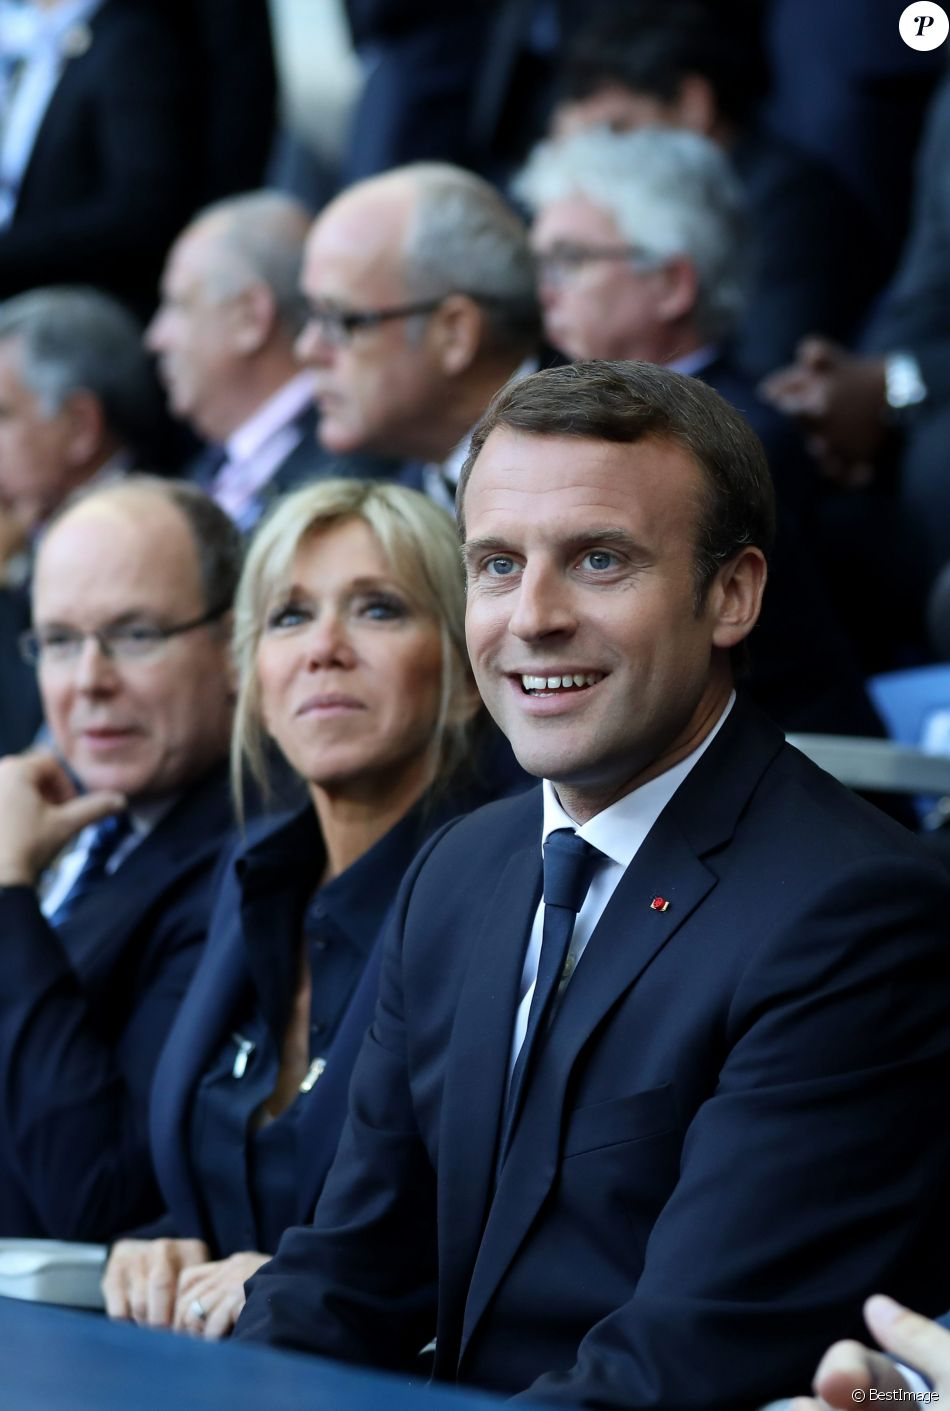 Le prince Albert II de Monaco, la première dame Brigitte Macron (Trogneux) et son mari le président de la République Emmanuel Macron - Finale du Top 14, ASM Clermont contre le RC Toulon au Stade de France à Saint-Denis, Seine Saint-Denis (banlieus de Paris), France, le 4 juin 2017. ASM Clermont remporte le match contre RC Toulon 22-16. © Dominique Jacovides/Bestimage